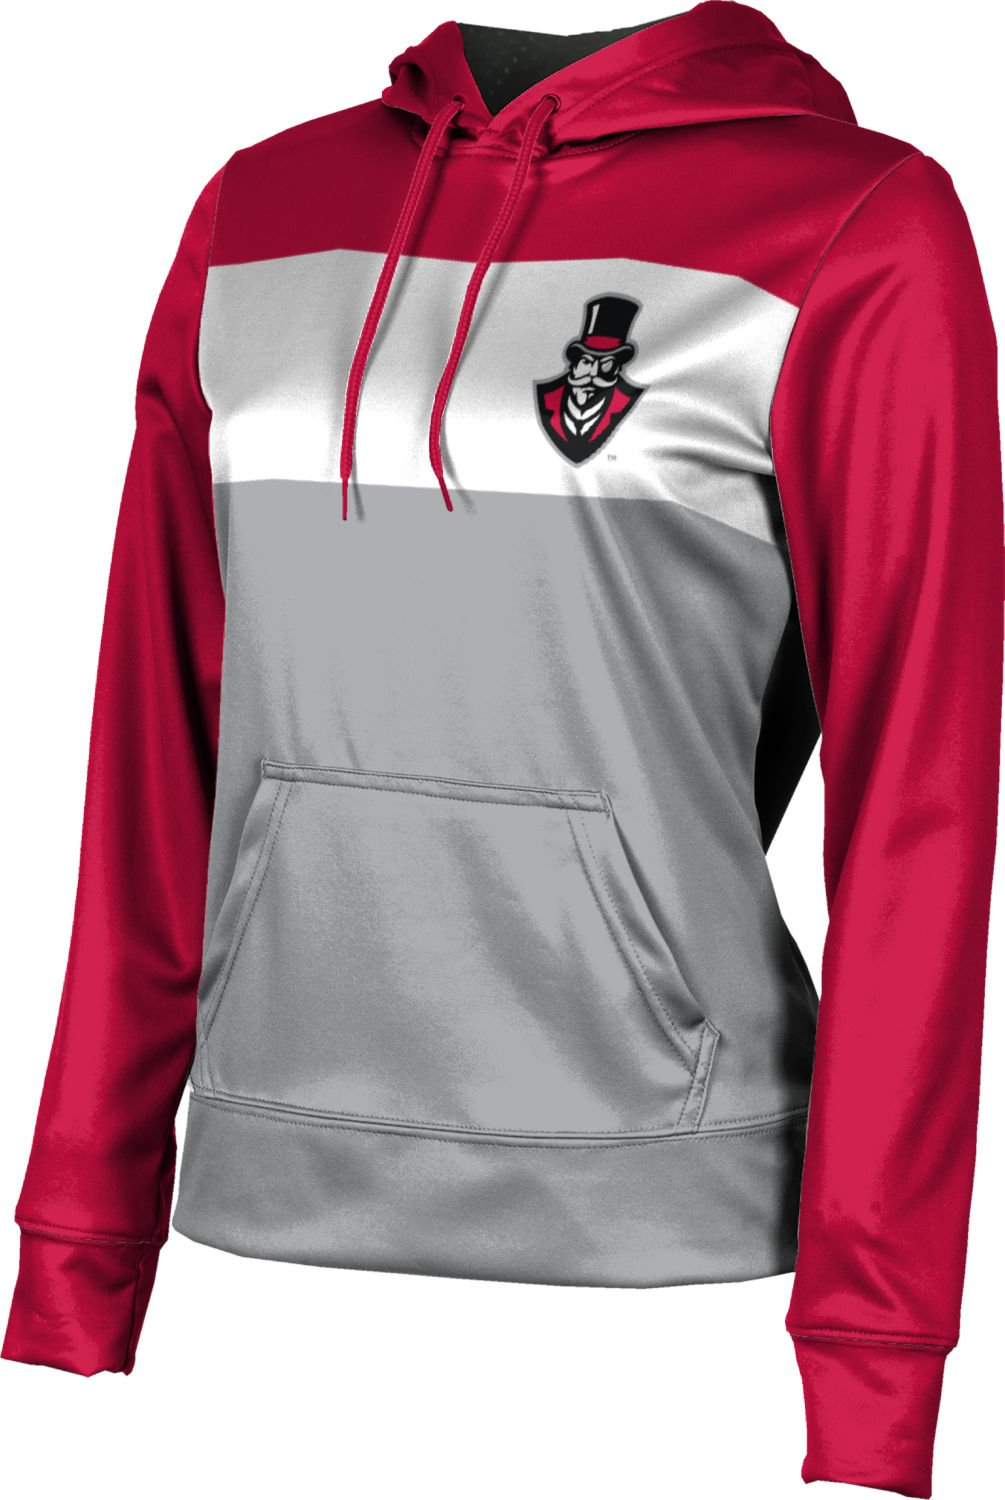 ProSphere Austin Peay State University Girls' Pullover Hoodie - Prime FD371 by ProSphere (Image #1)